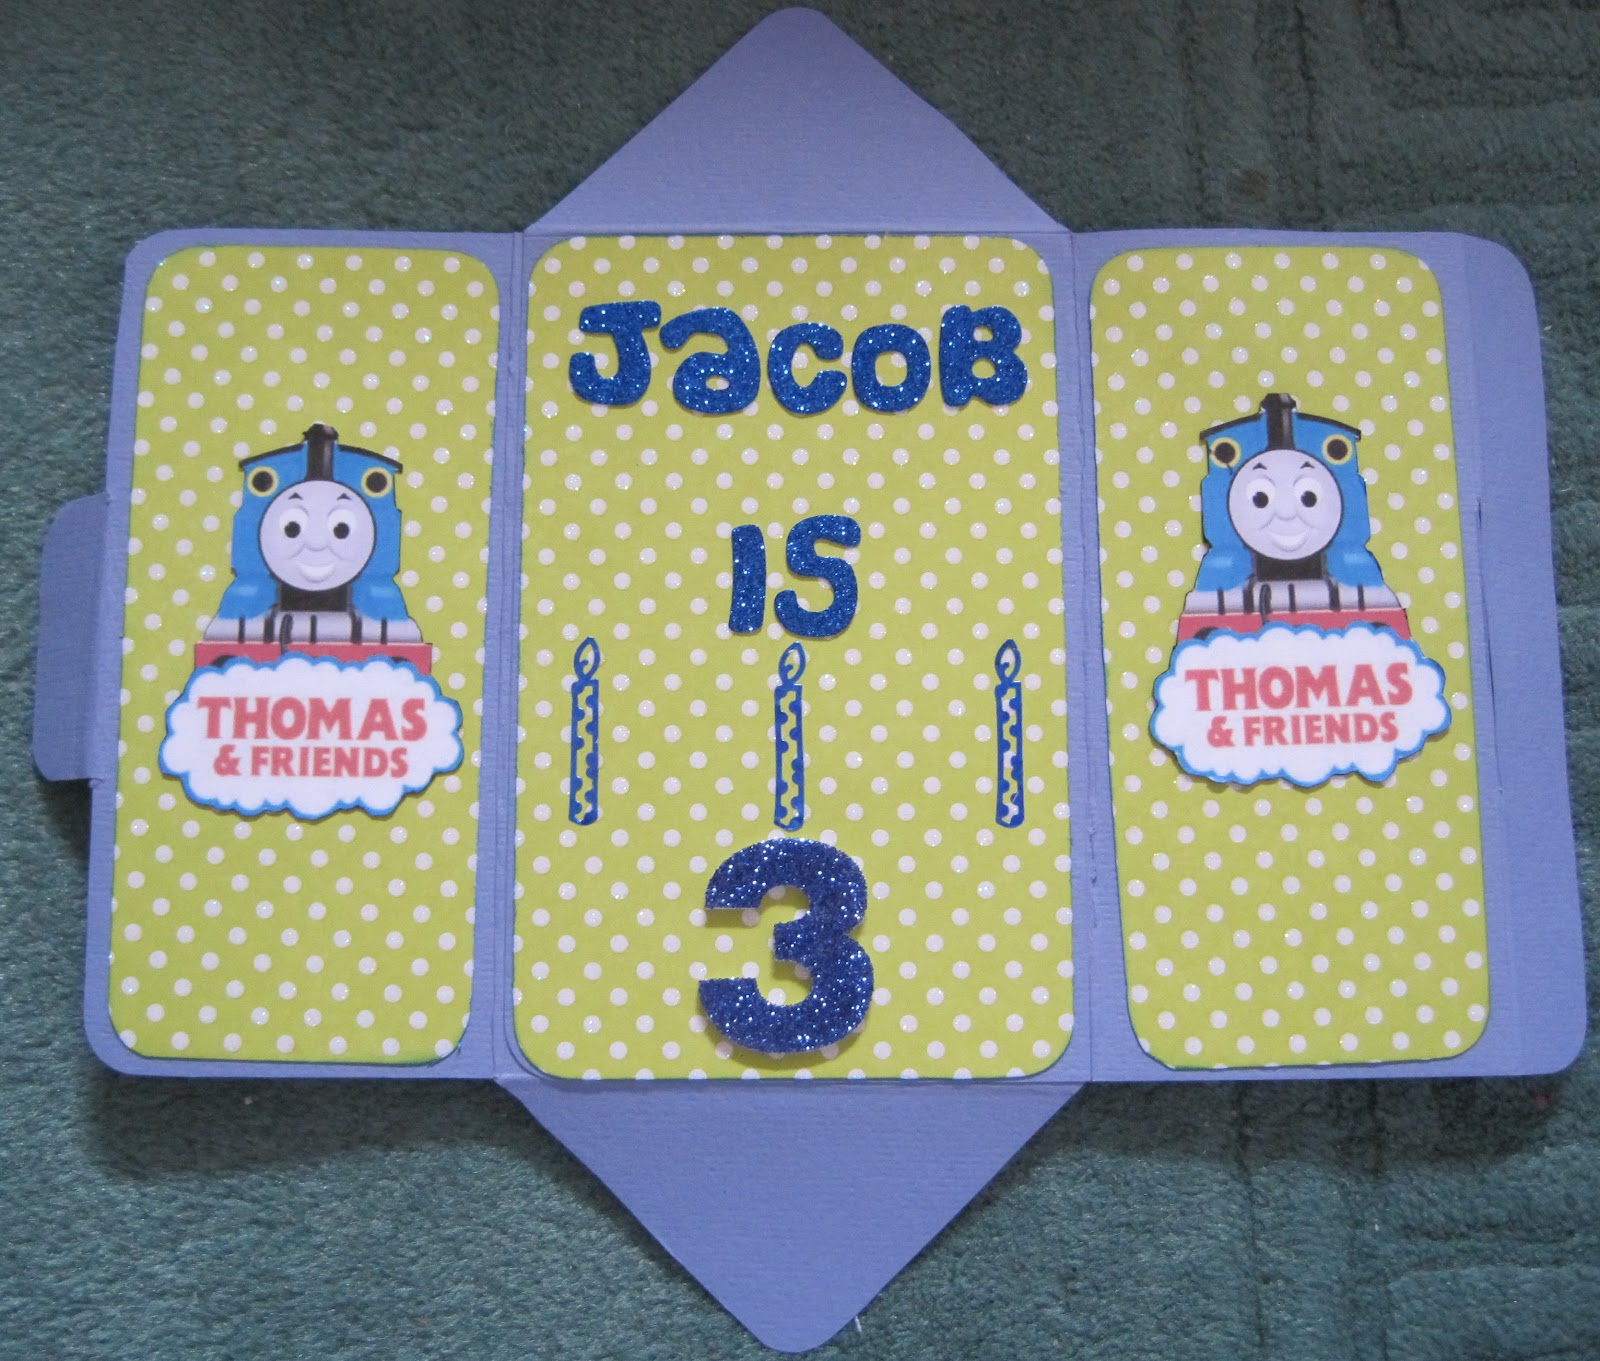 This Is The Birthday Card I Made For Grandson Like Most 3 Year Old Boys He Mad On Thomas Tank Engine And Friends My Husband Found Me Some Fun